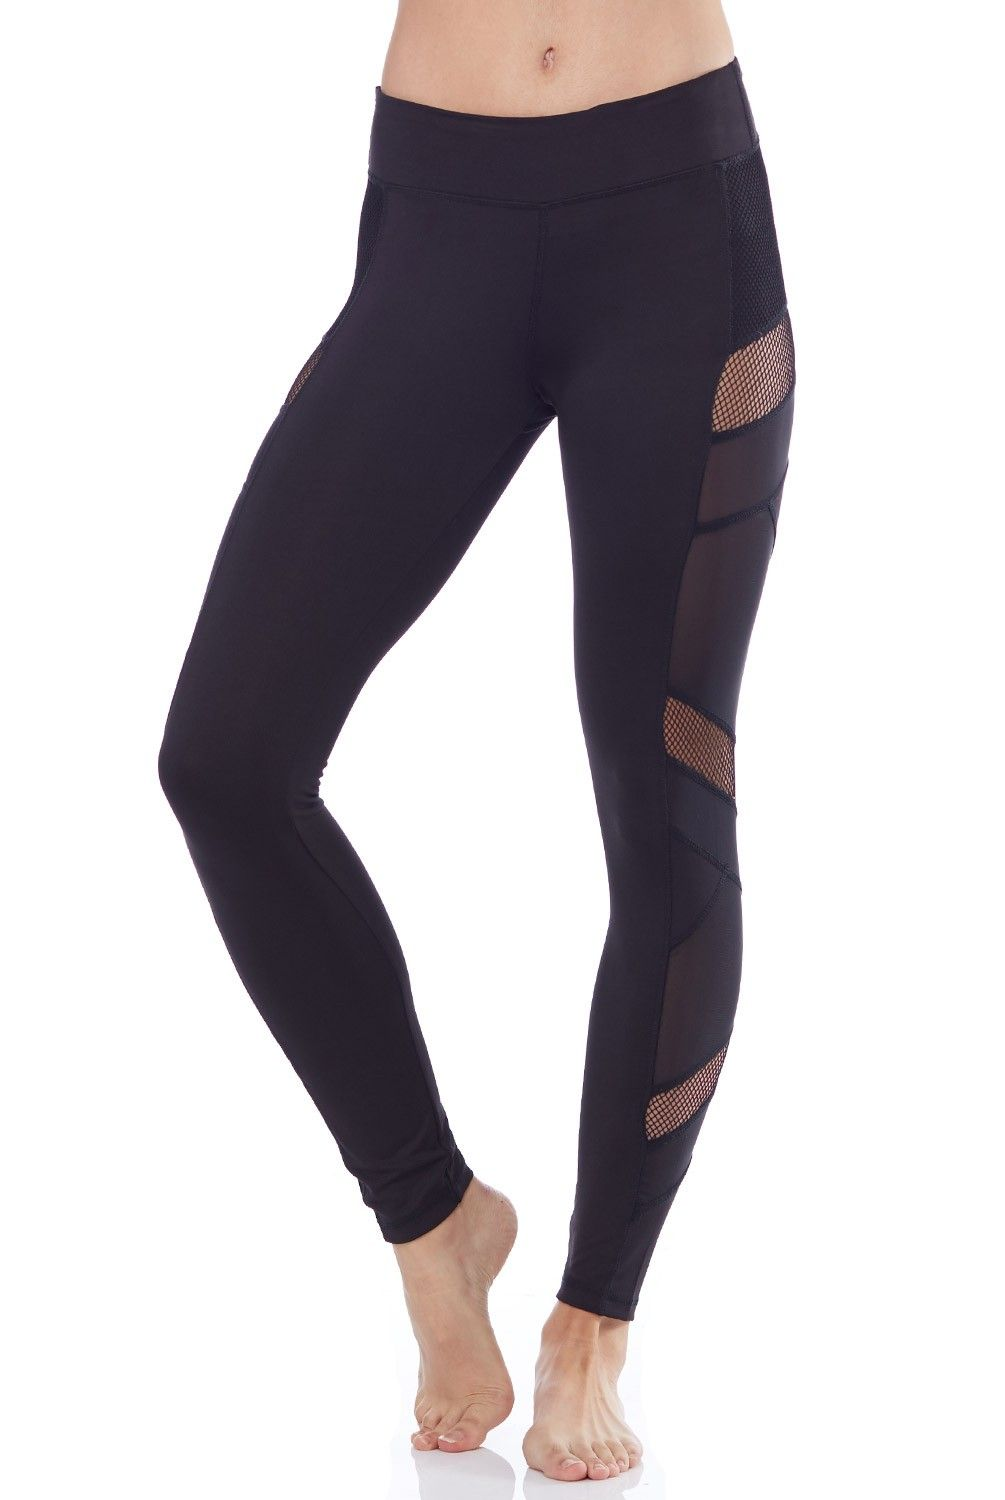 Womens Mesh-Inset Leggings Electric Yoga wzAKk20SrN